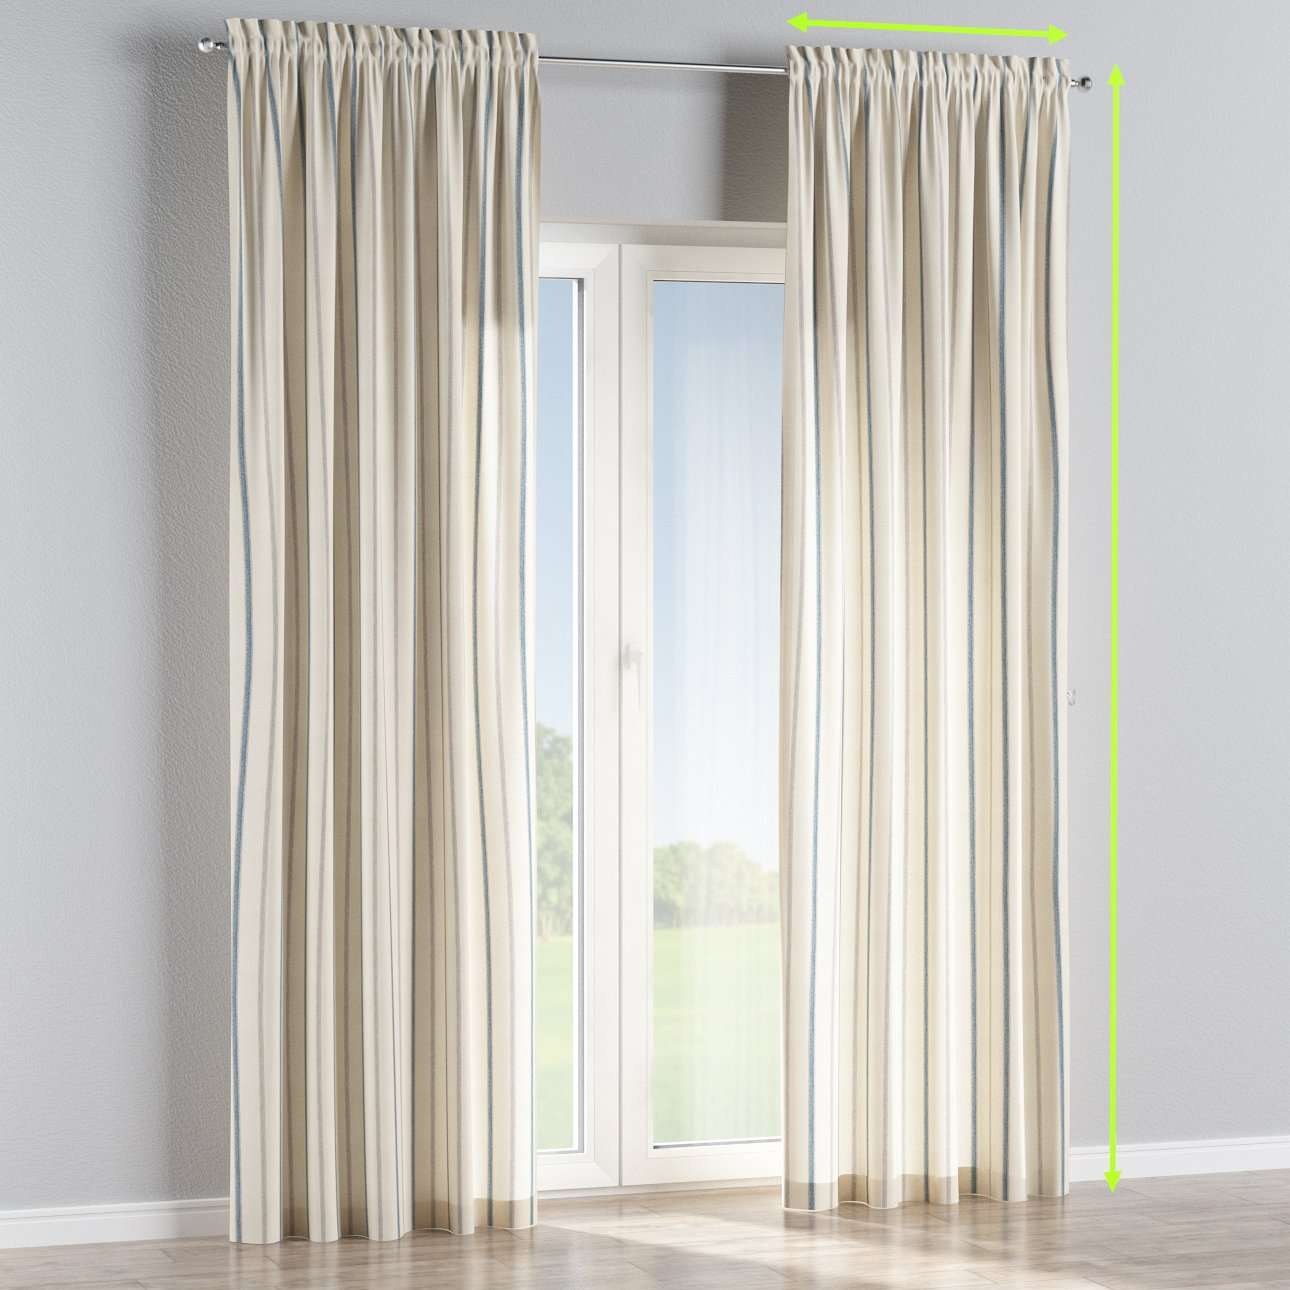 Slot and frill lined curtains in collection Avinon, fabric: 129-66